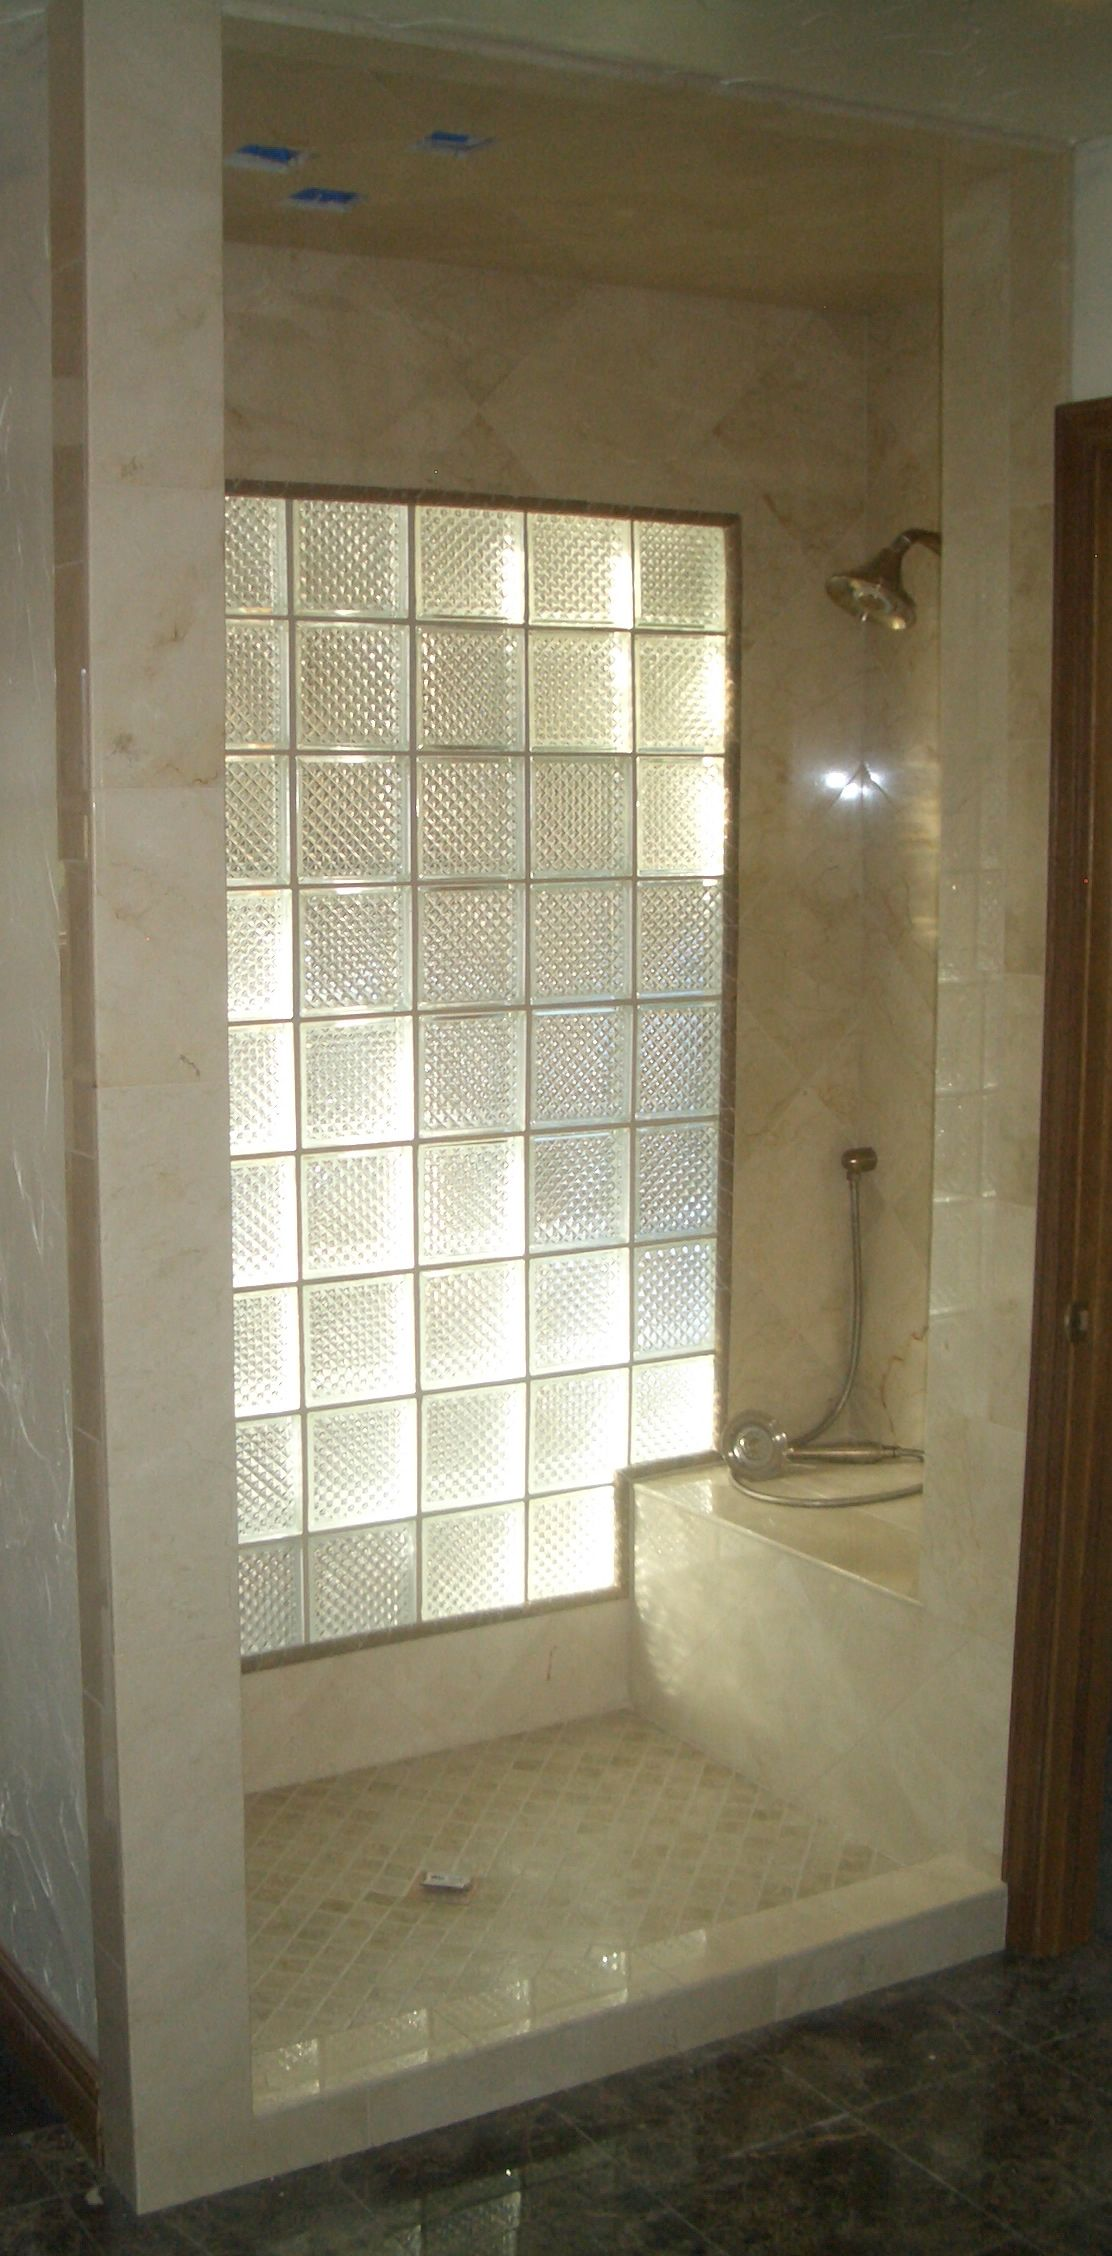 Glass Blocks To Let Light Into Bathroom Ideas For My